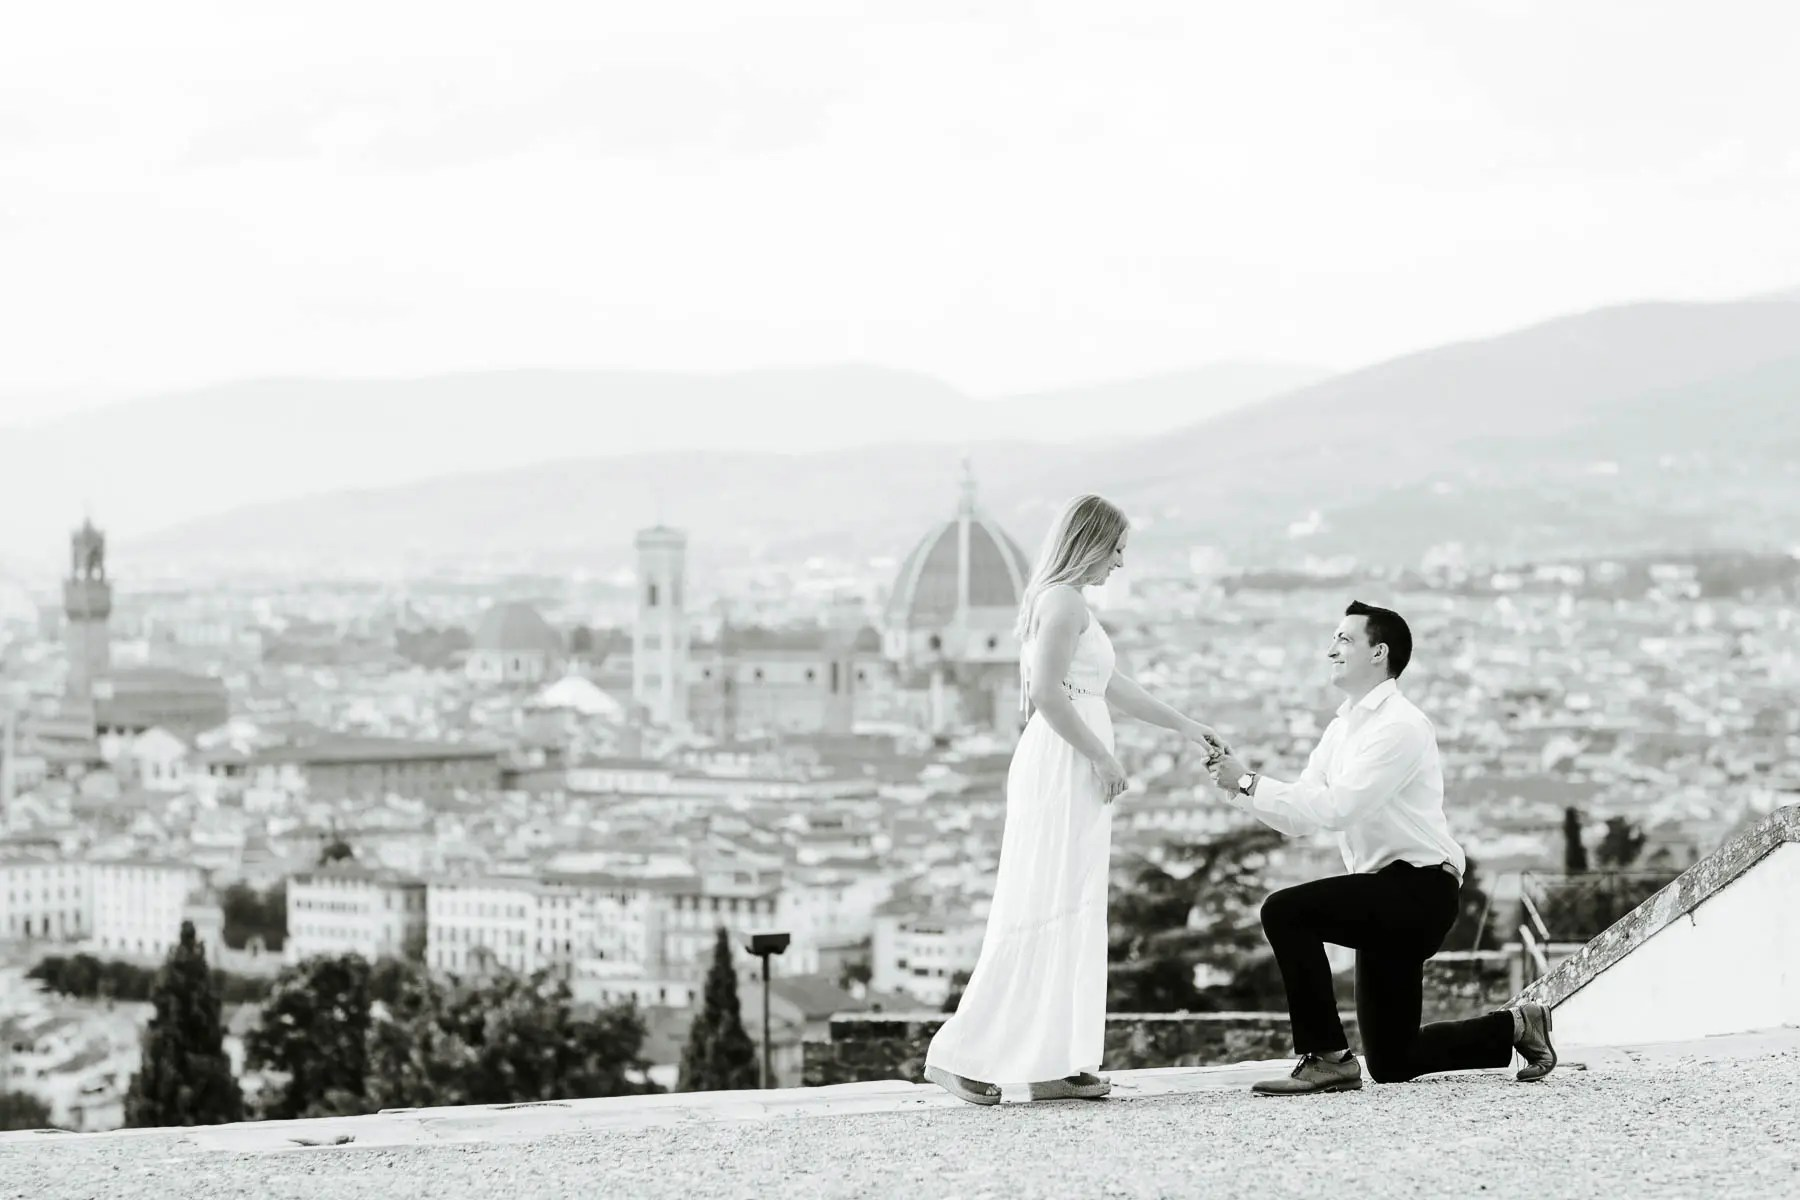 Proposing your fiancé or partner feels like the most beautiful thing ever